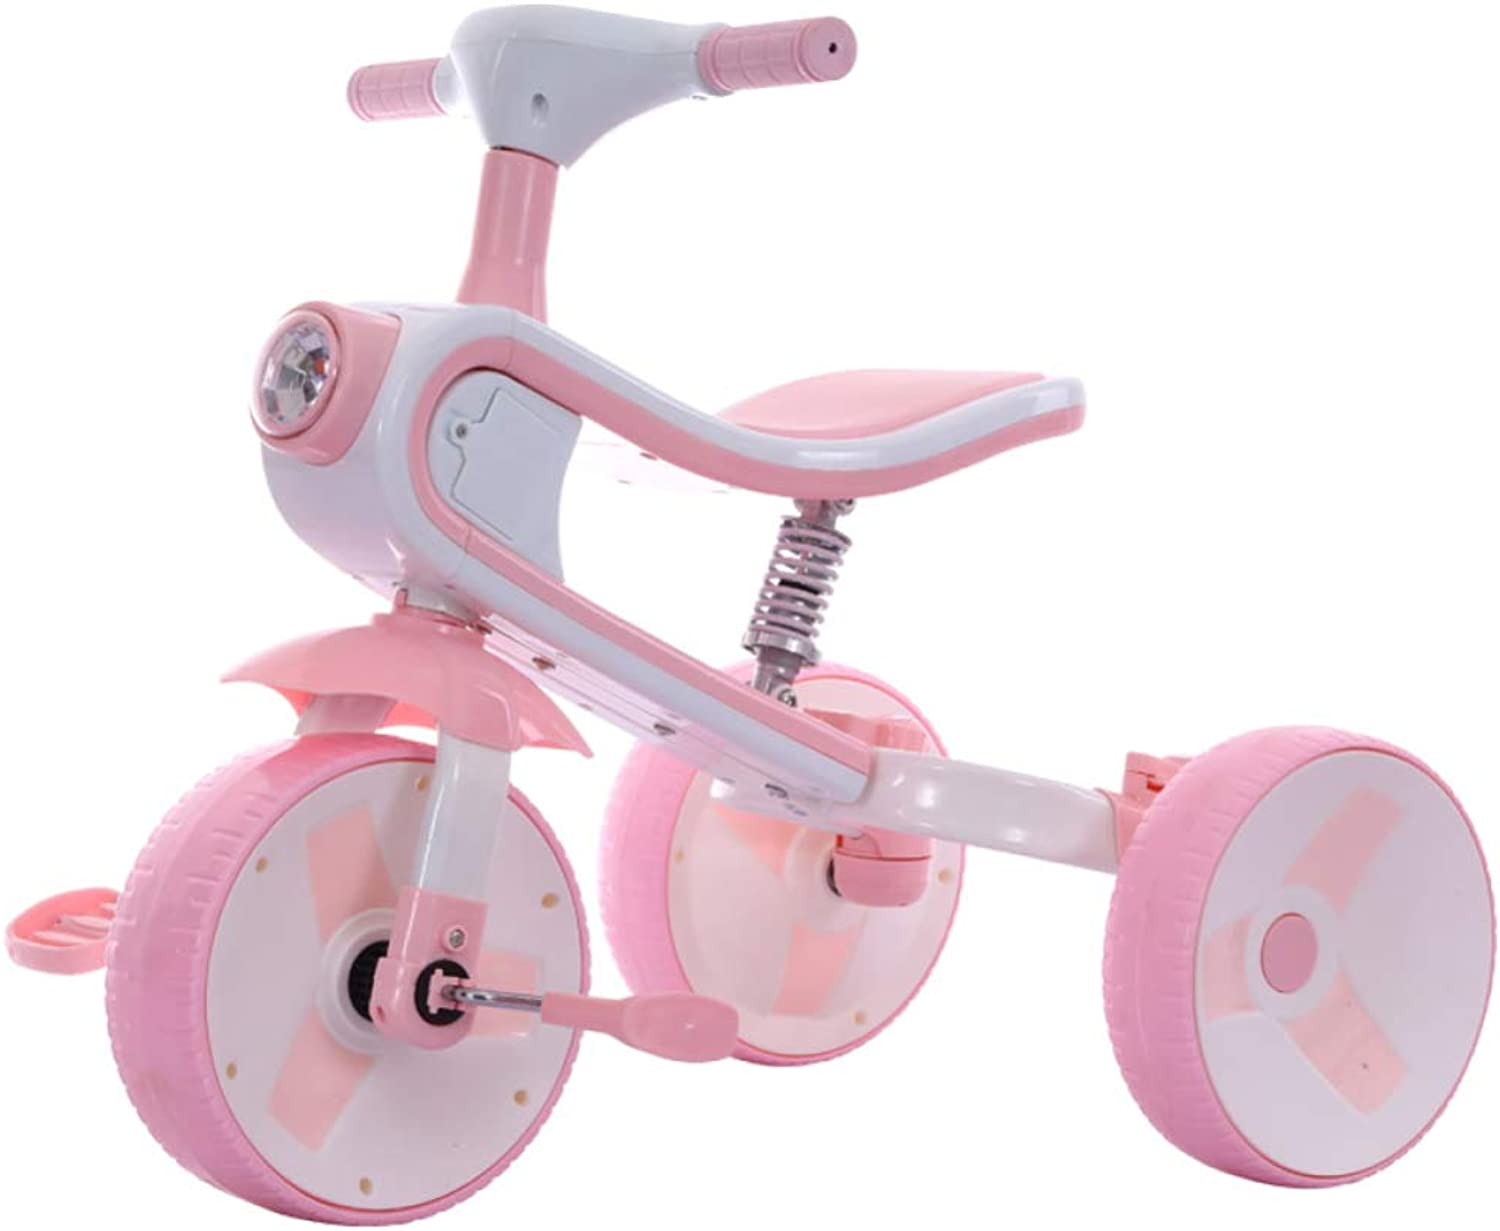 JYY Tricycle Kids And Balance Bike Infant Scooter Baby Walker Bike,Folding One Car Dual-use Ride Toy For 2-6 Years Old,Pink